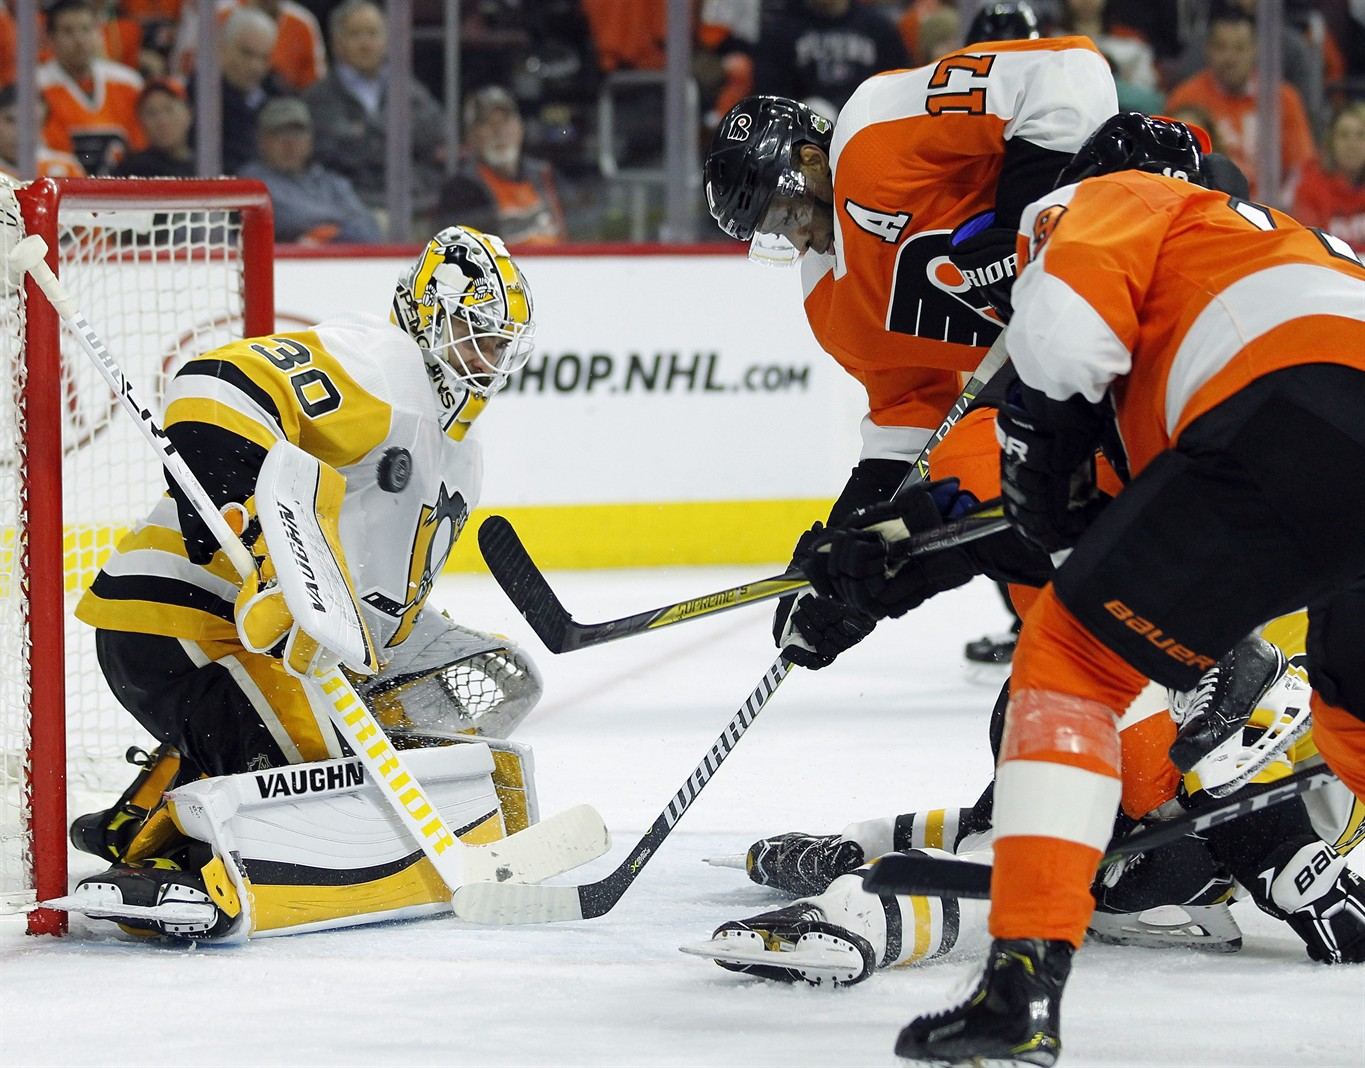 Overstating the obvious: Matt Murray will set the tone of the series